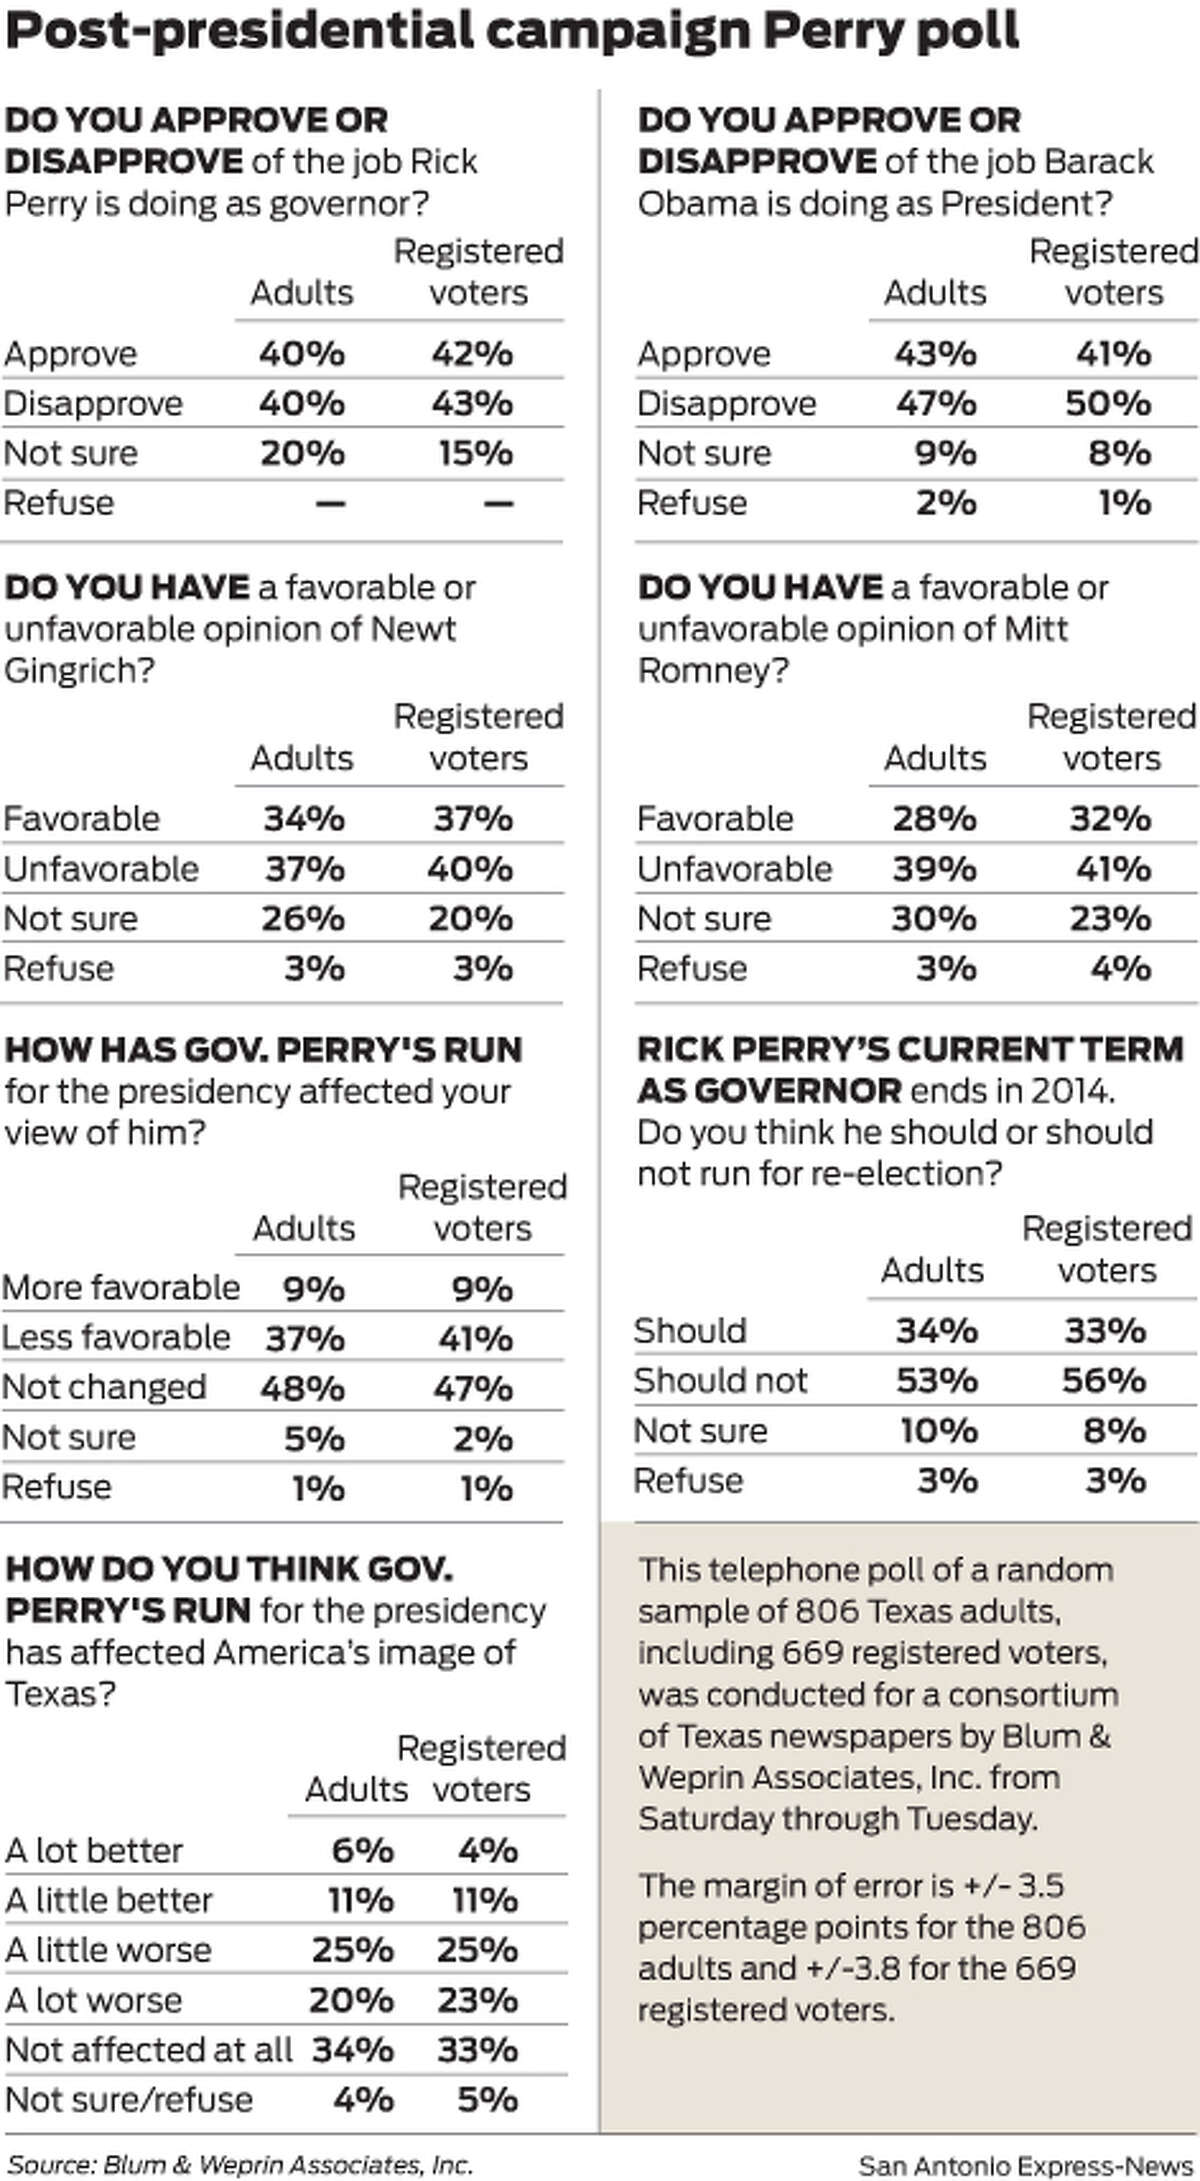 Post-presidential campaign Perry poll